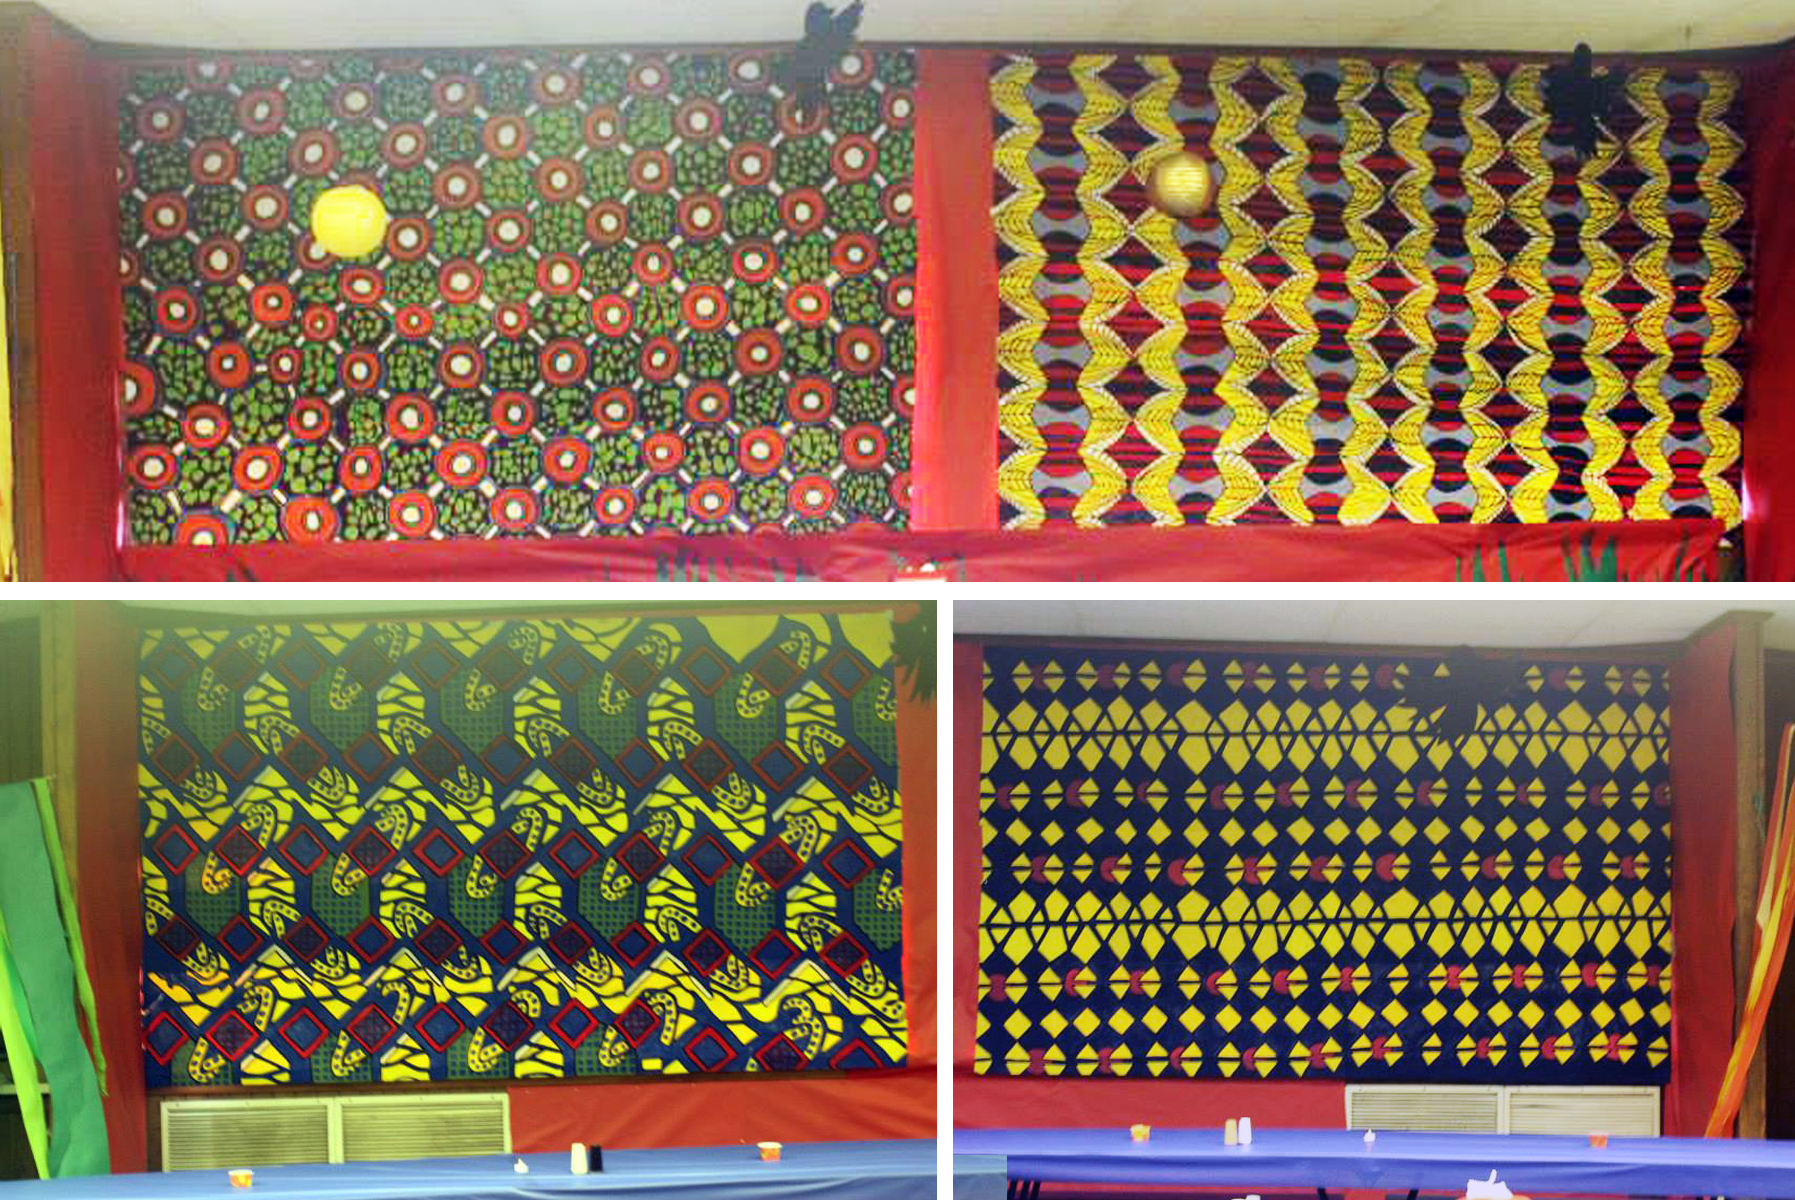 Painted panels of traditional Kente cloth and African Dutch Wax batik prints.